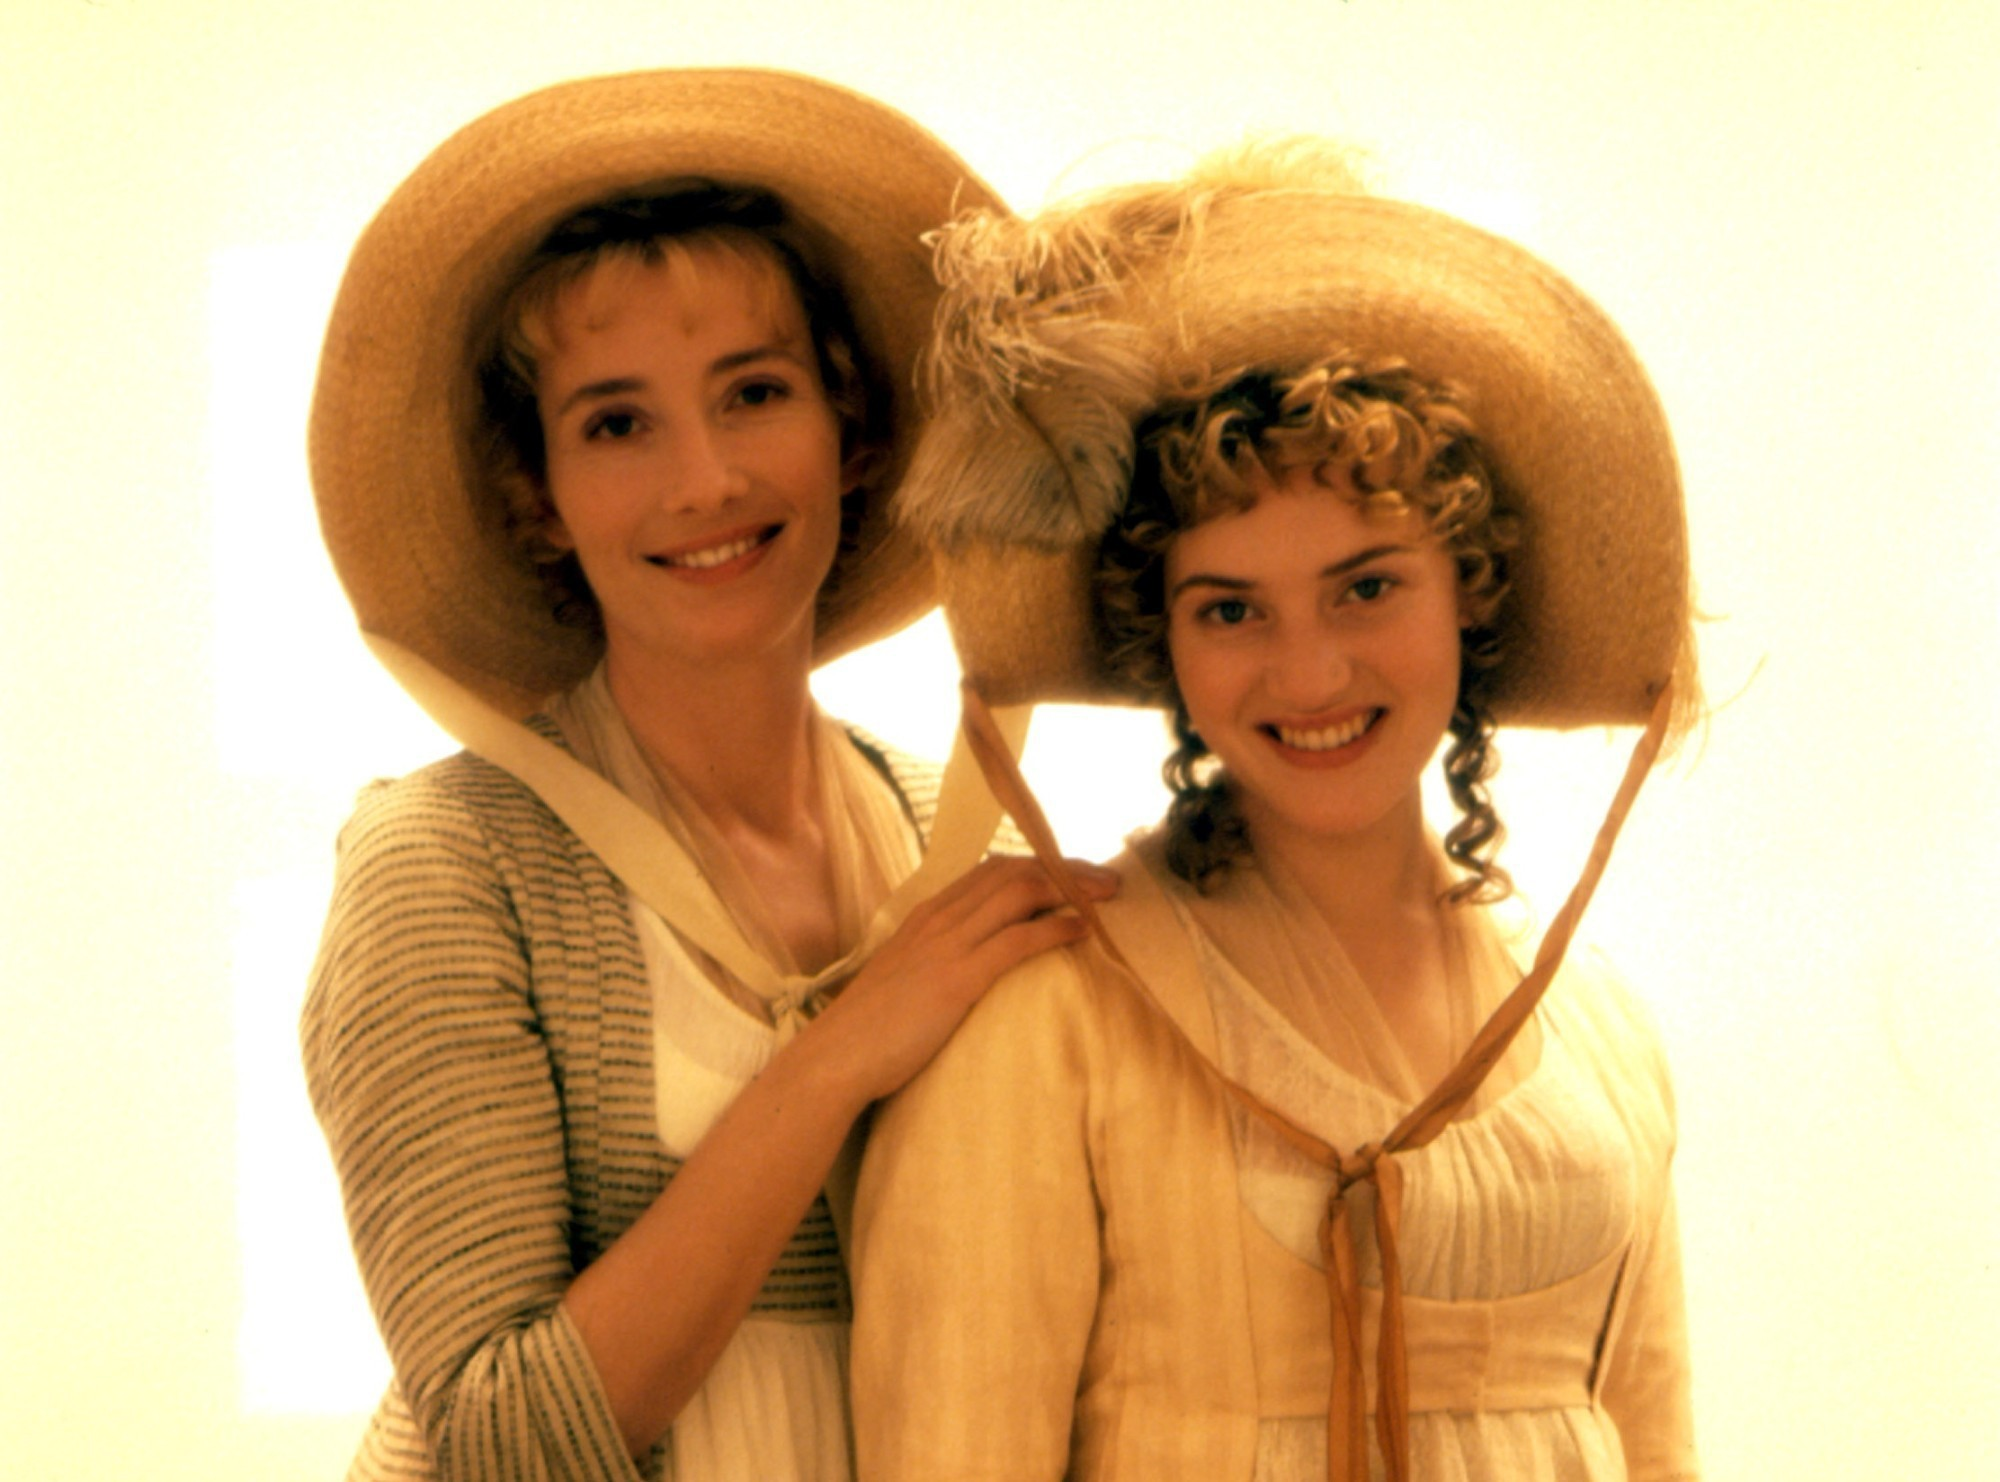 Elinor and Marianne Dashwood, as portrayed by Emma Thompson and Kate Winslet.